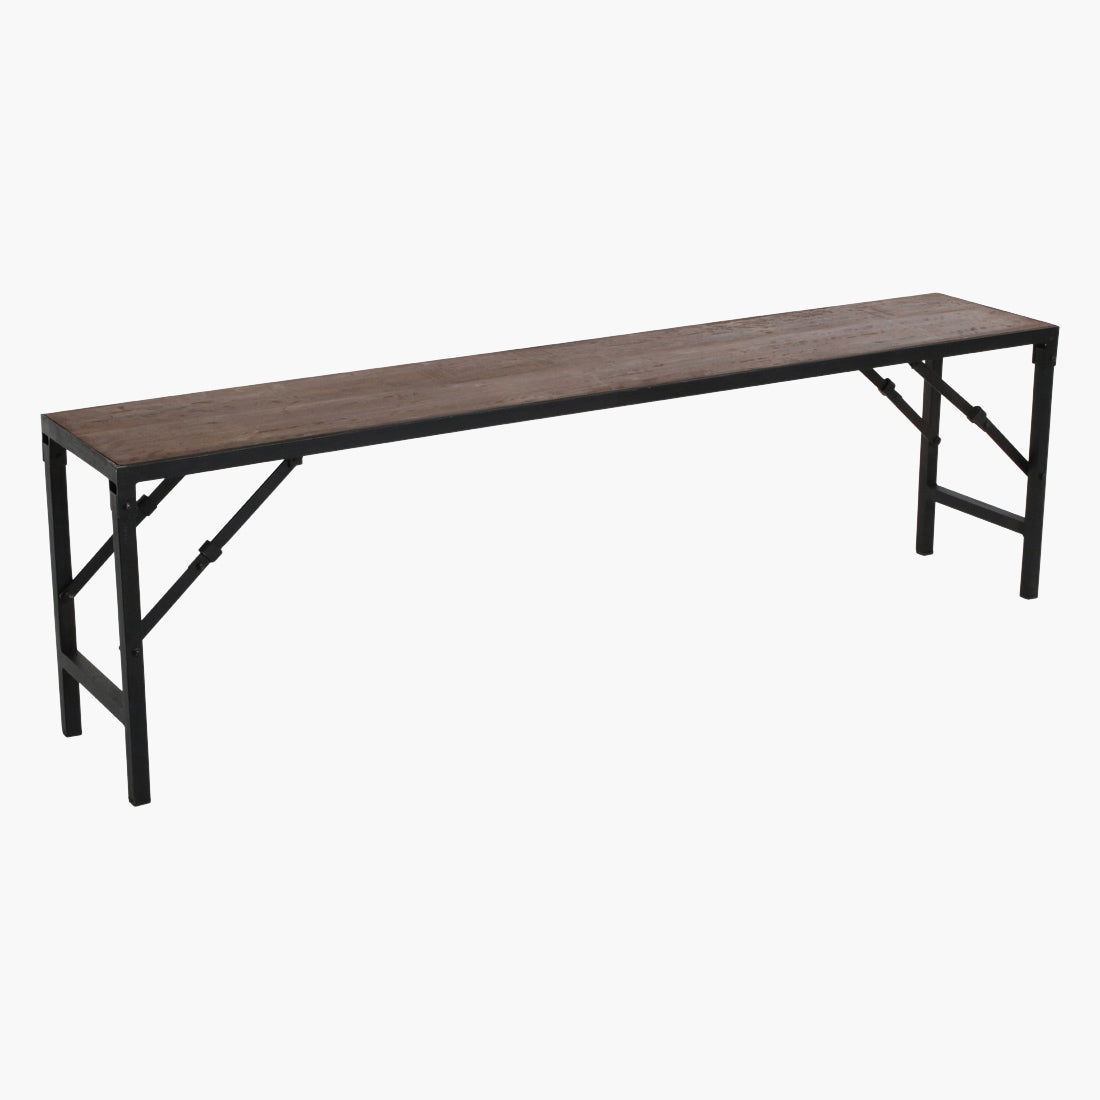 Factory bench folding large 160 cm